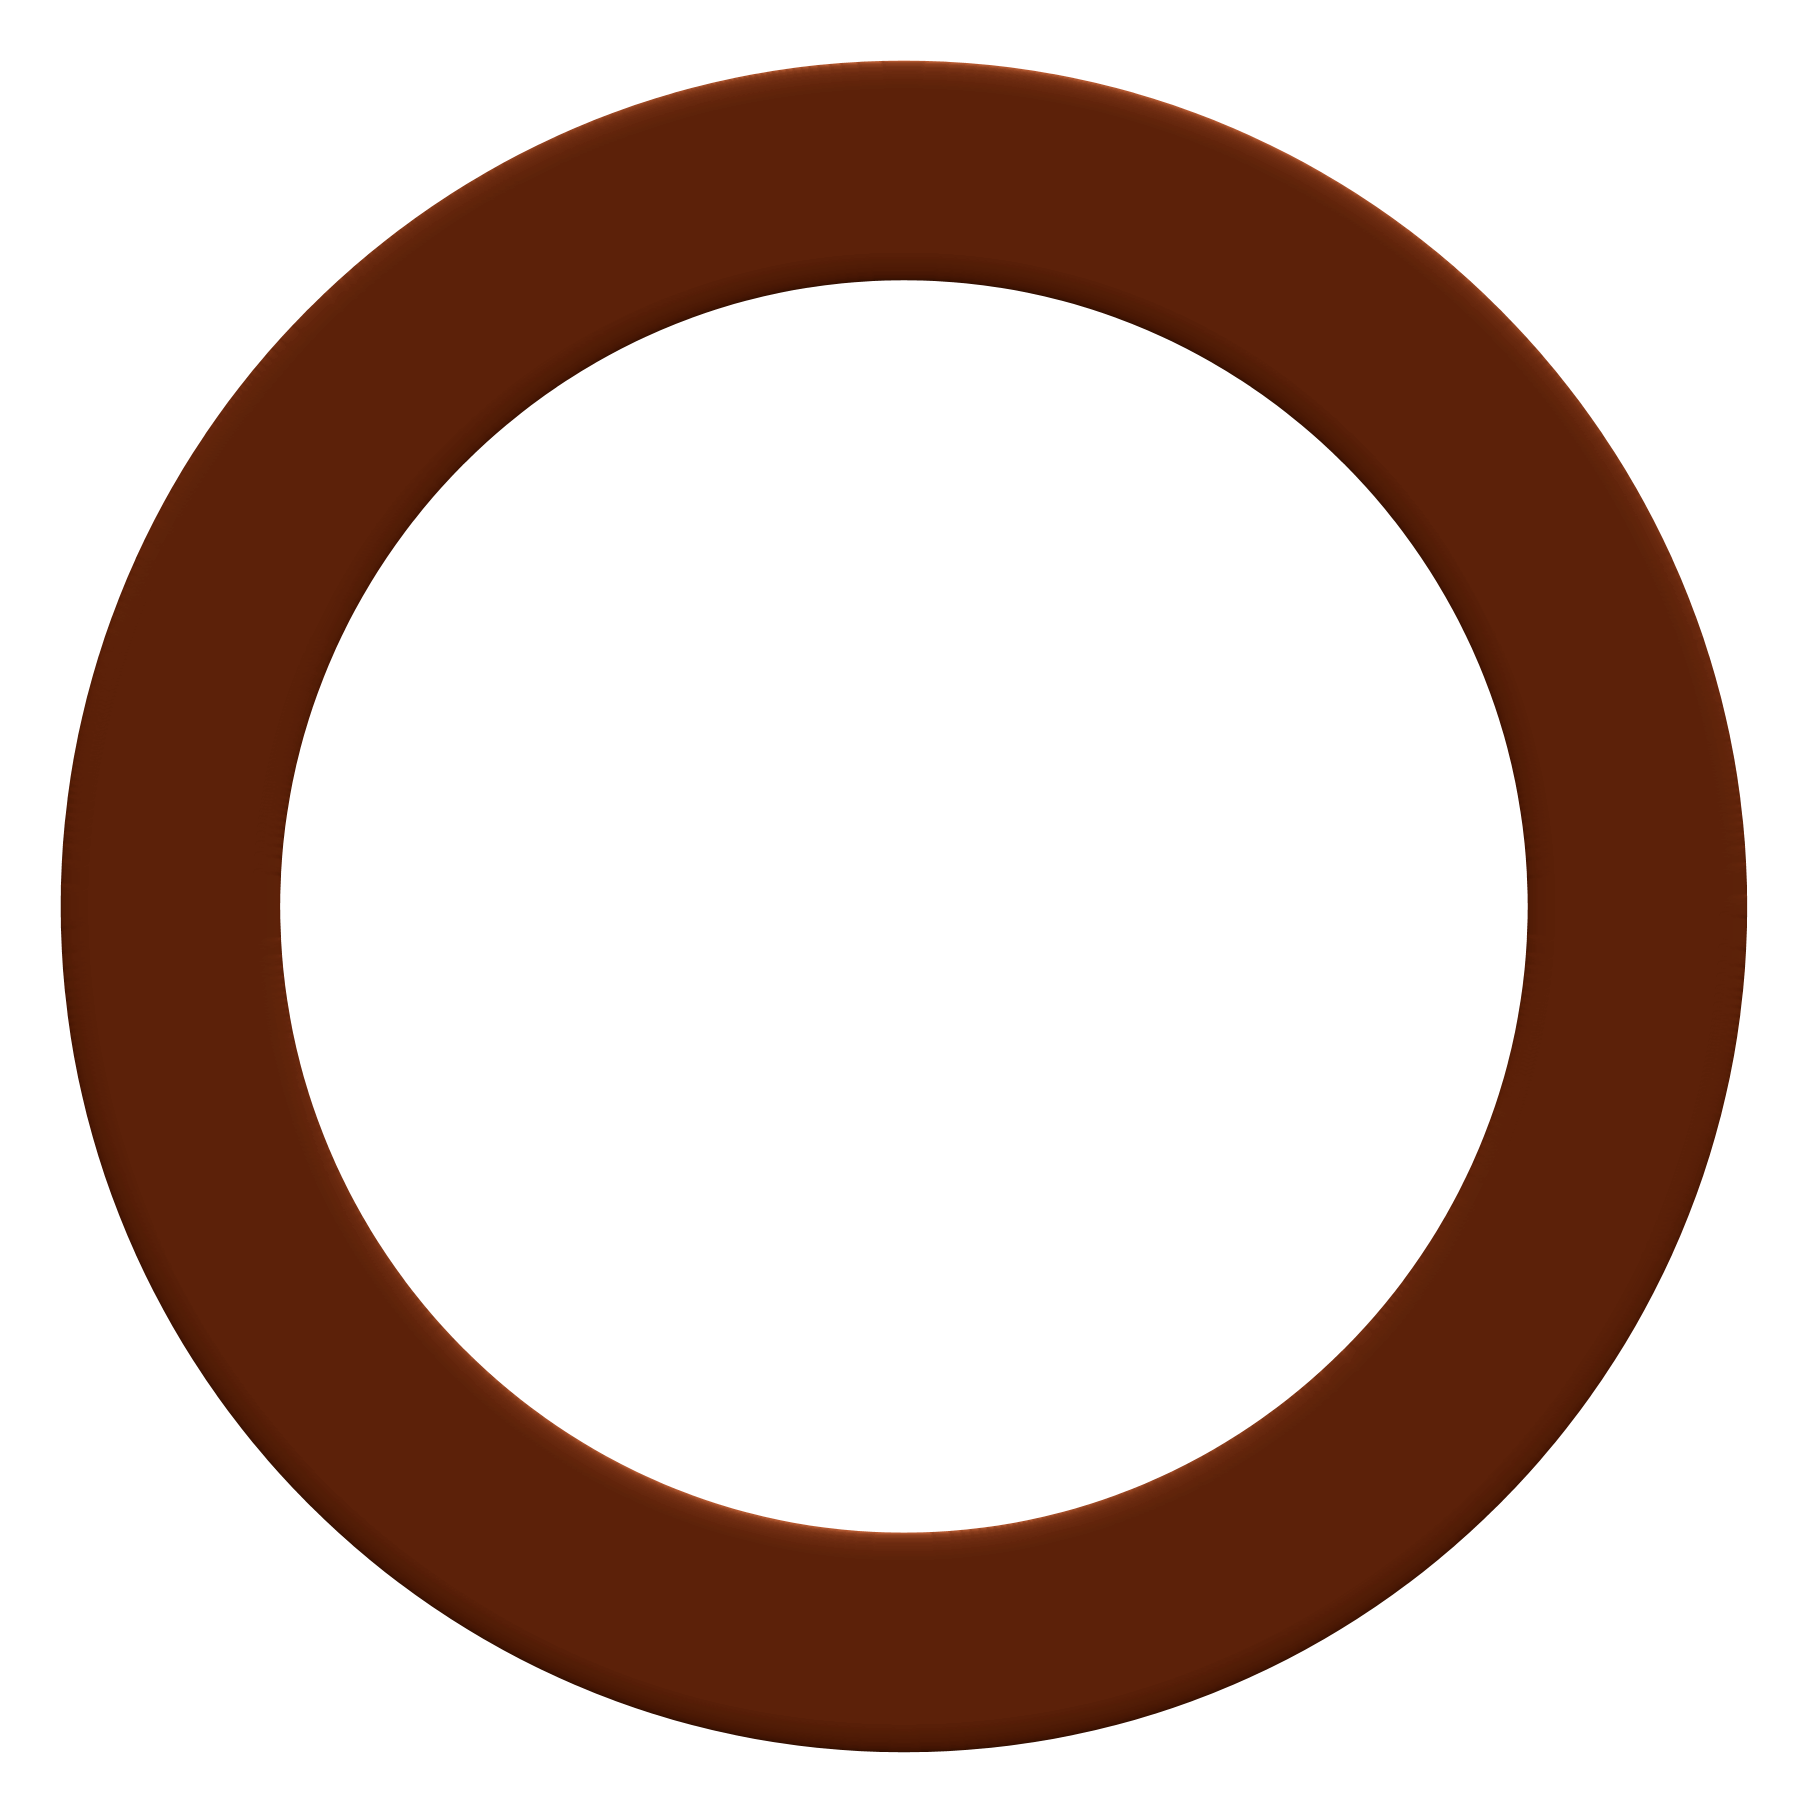 Png circle outline. Free icons and backgrounds